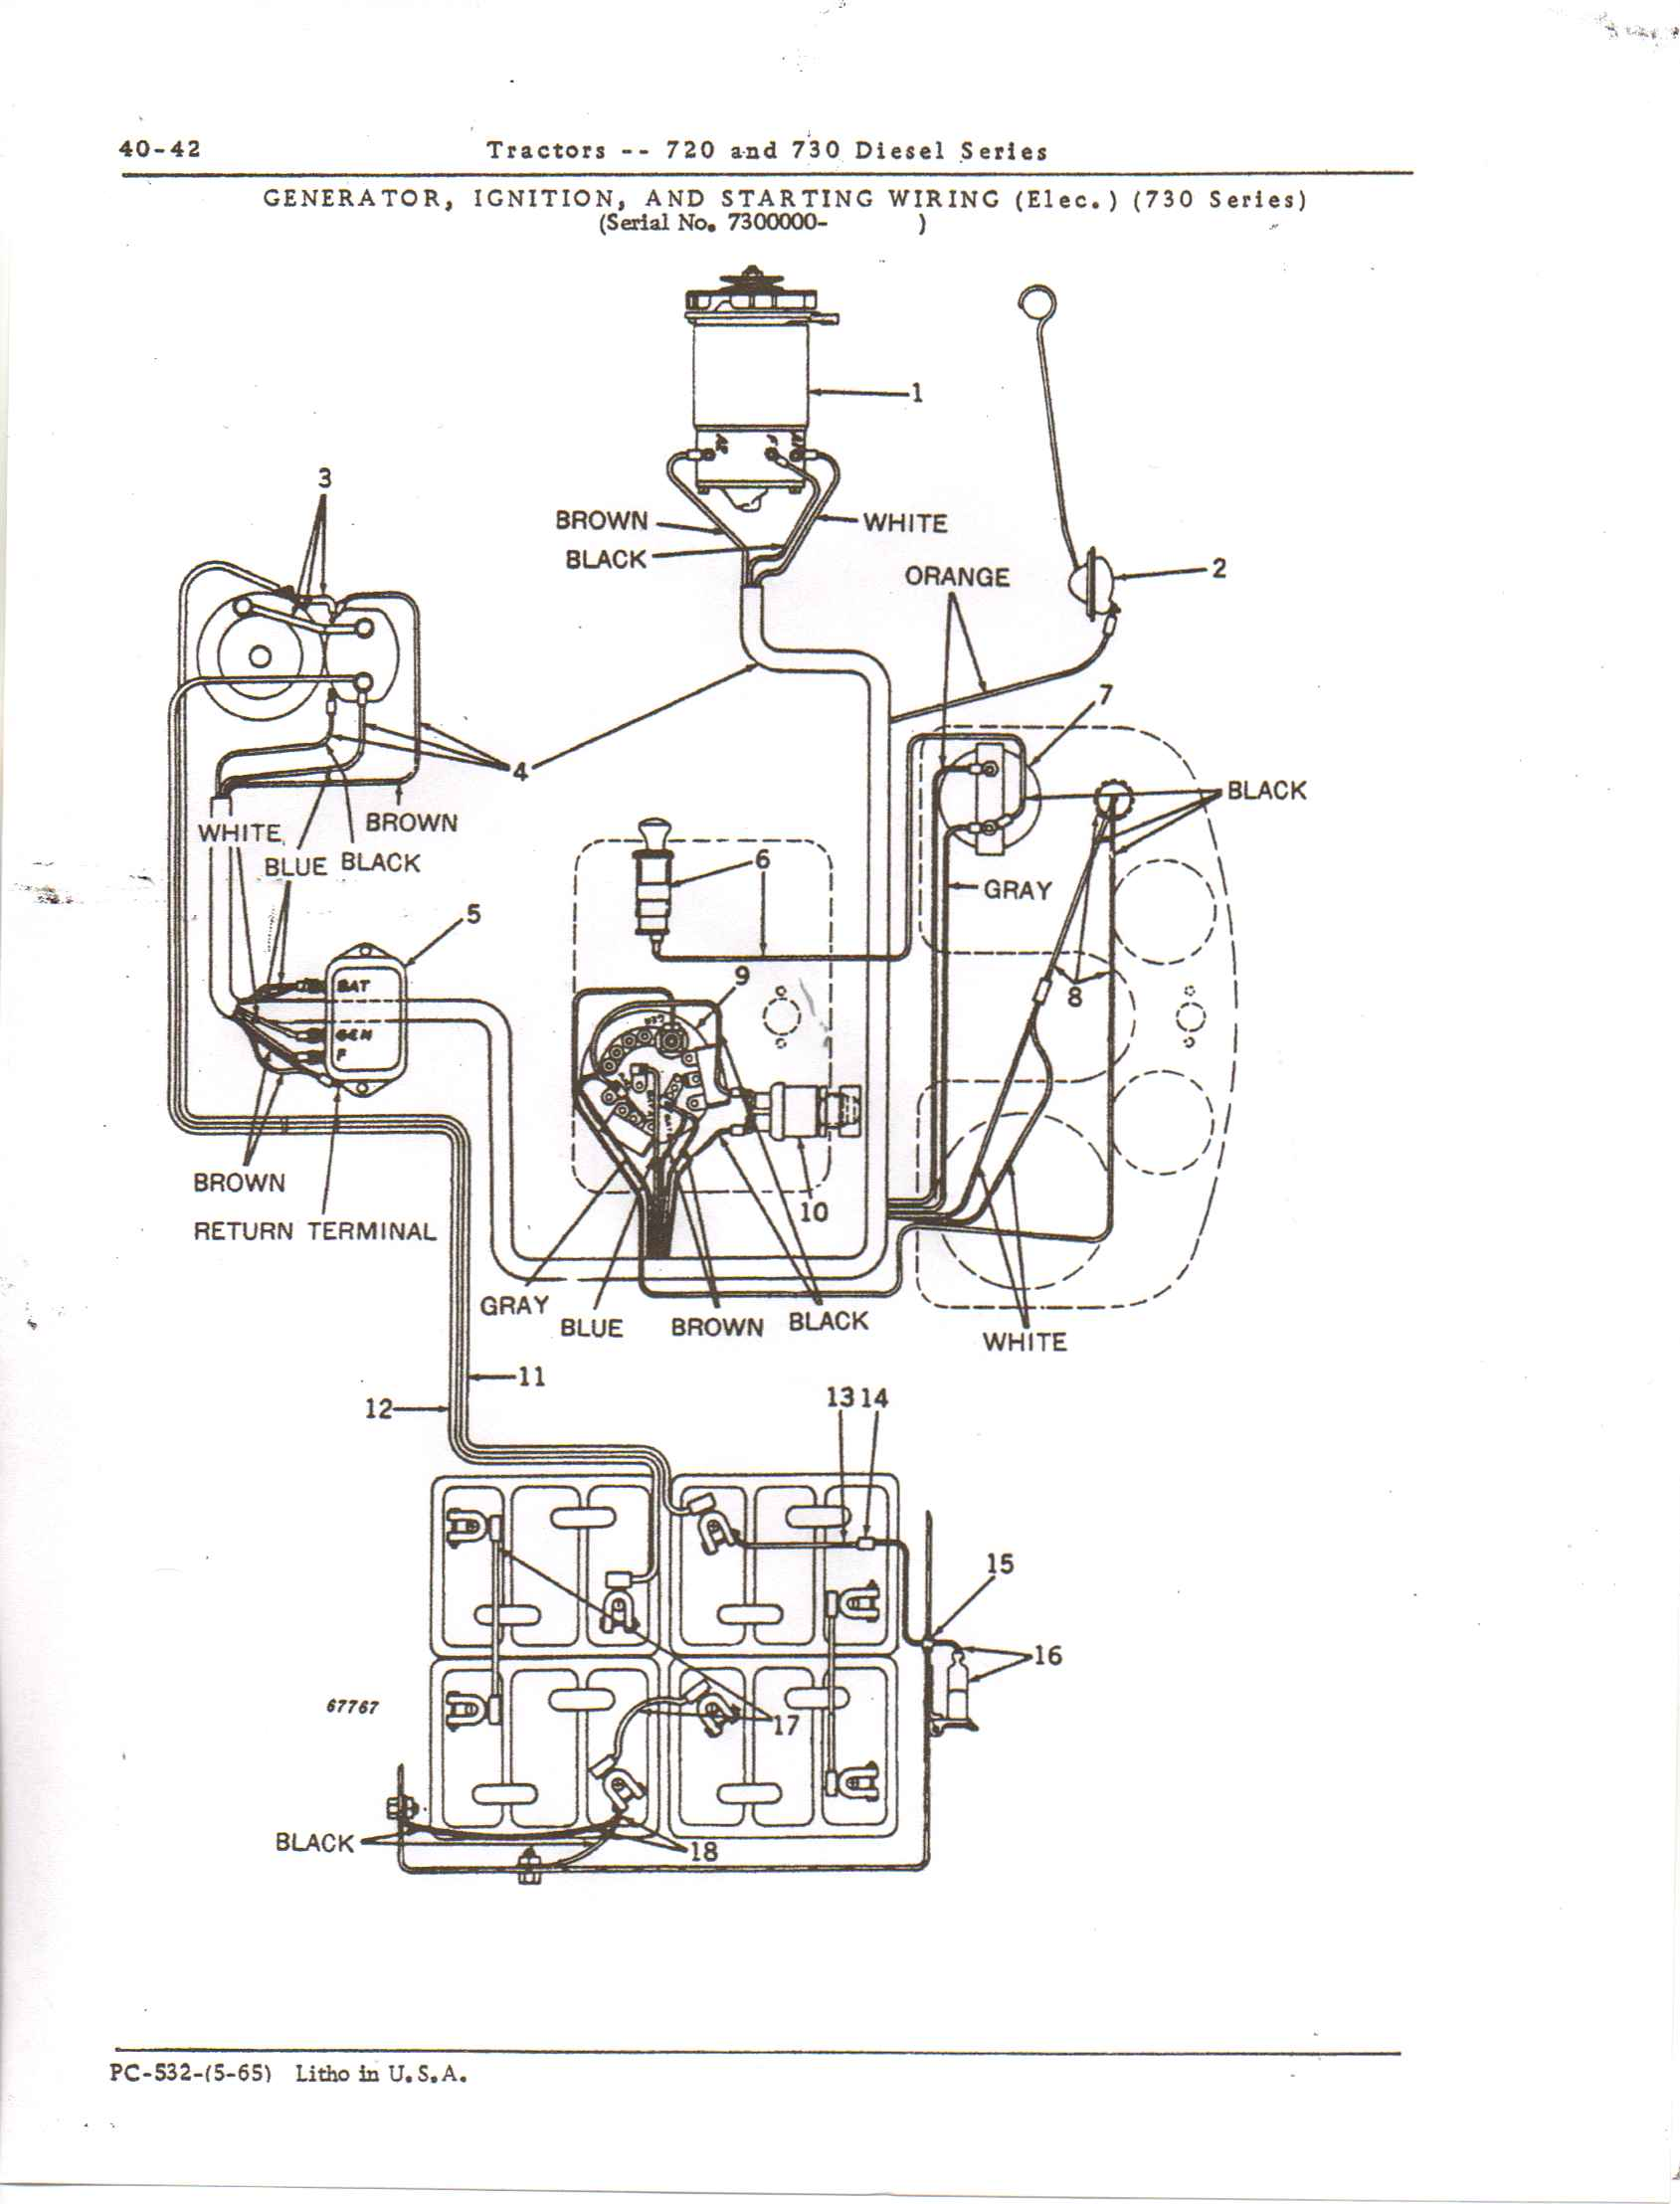 L118 Wiring Diagram Electrical Schematics John Deere La145 M Work Engineer Drawing At